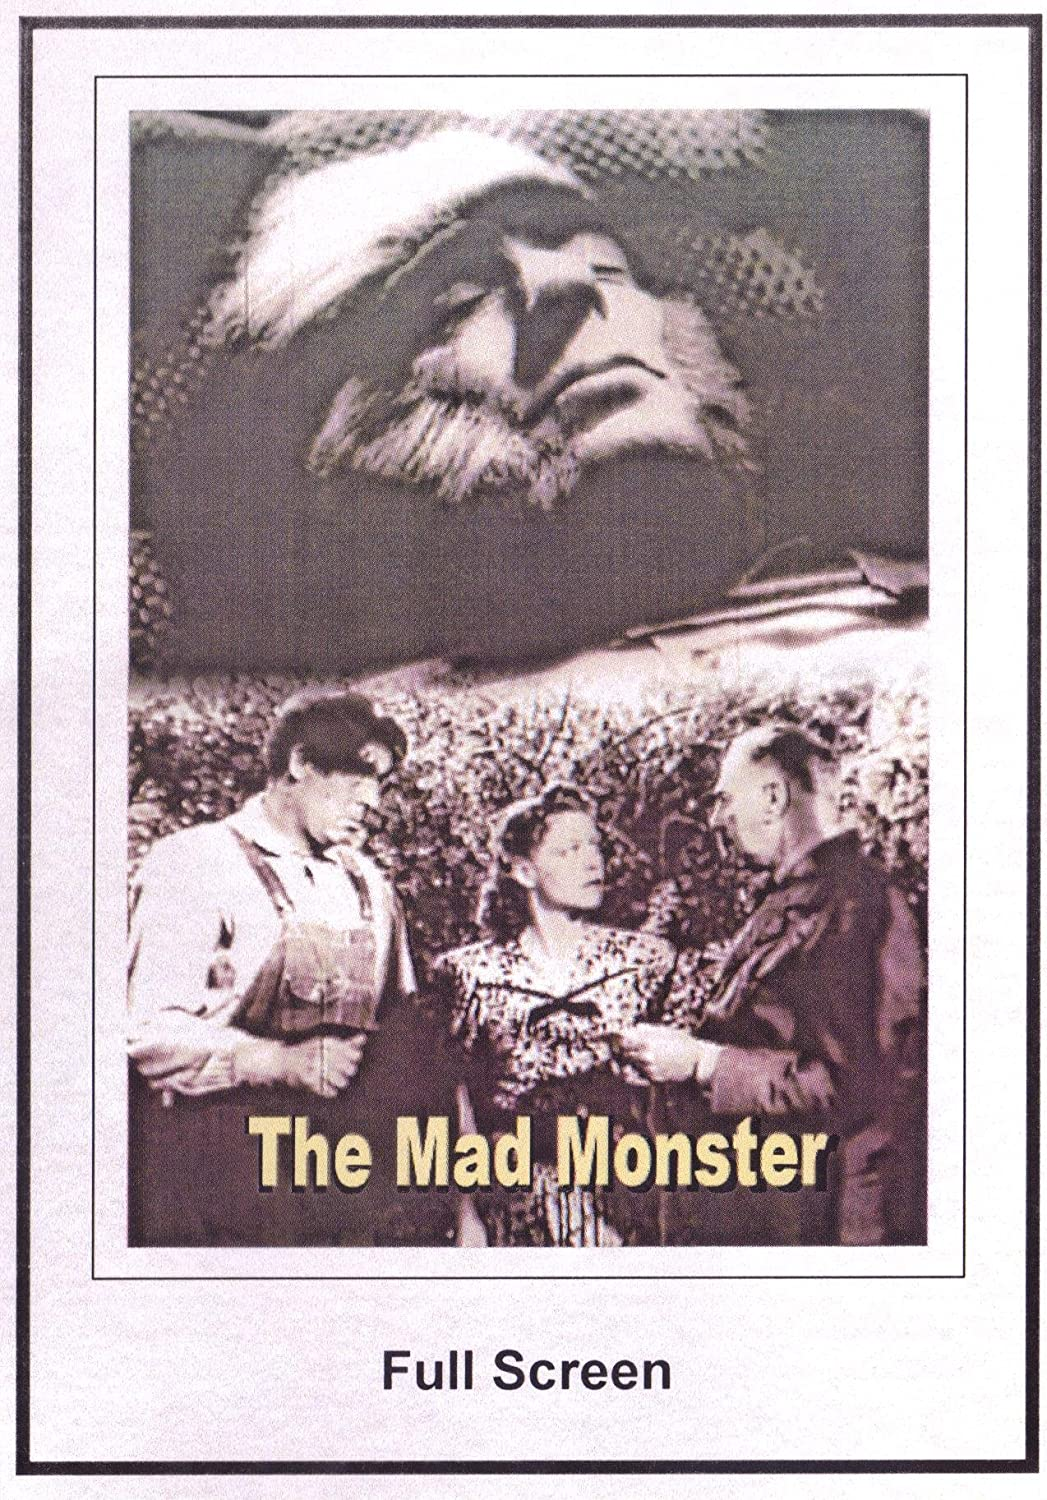 The Mad Monster Movie Still